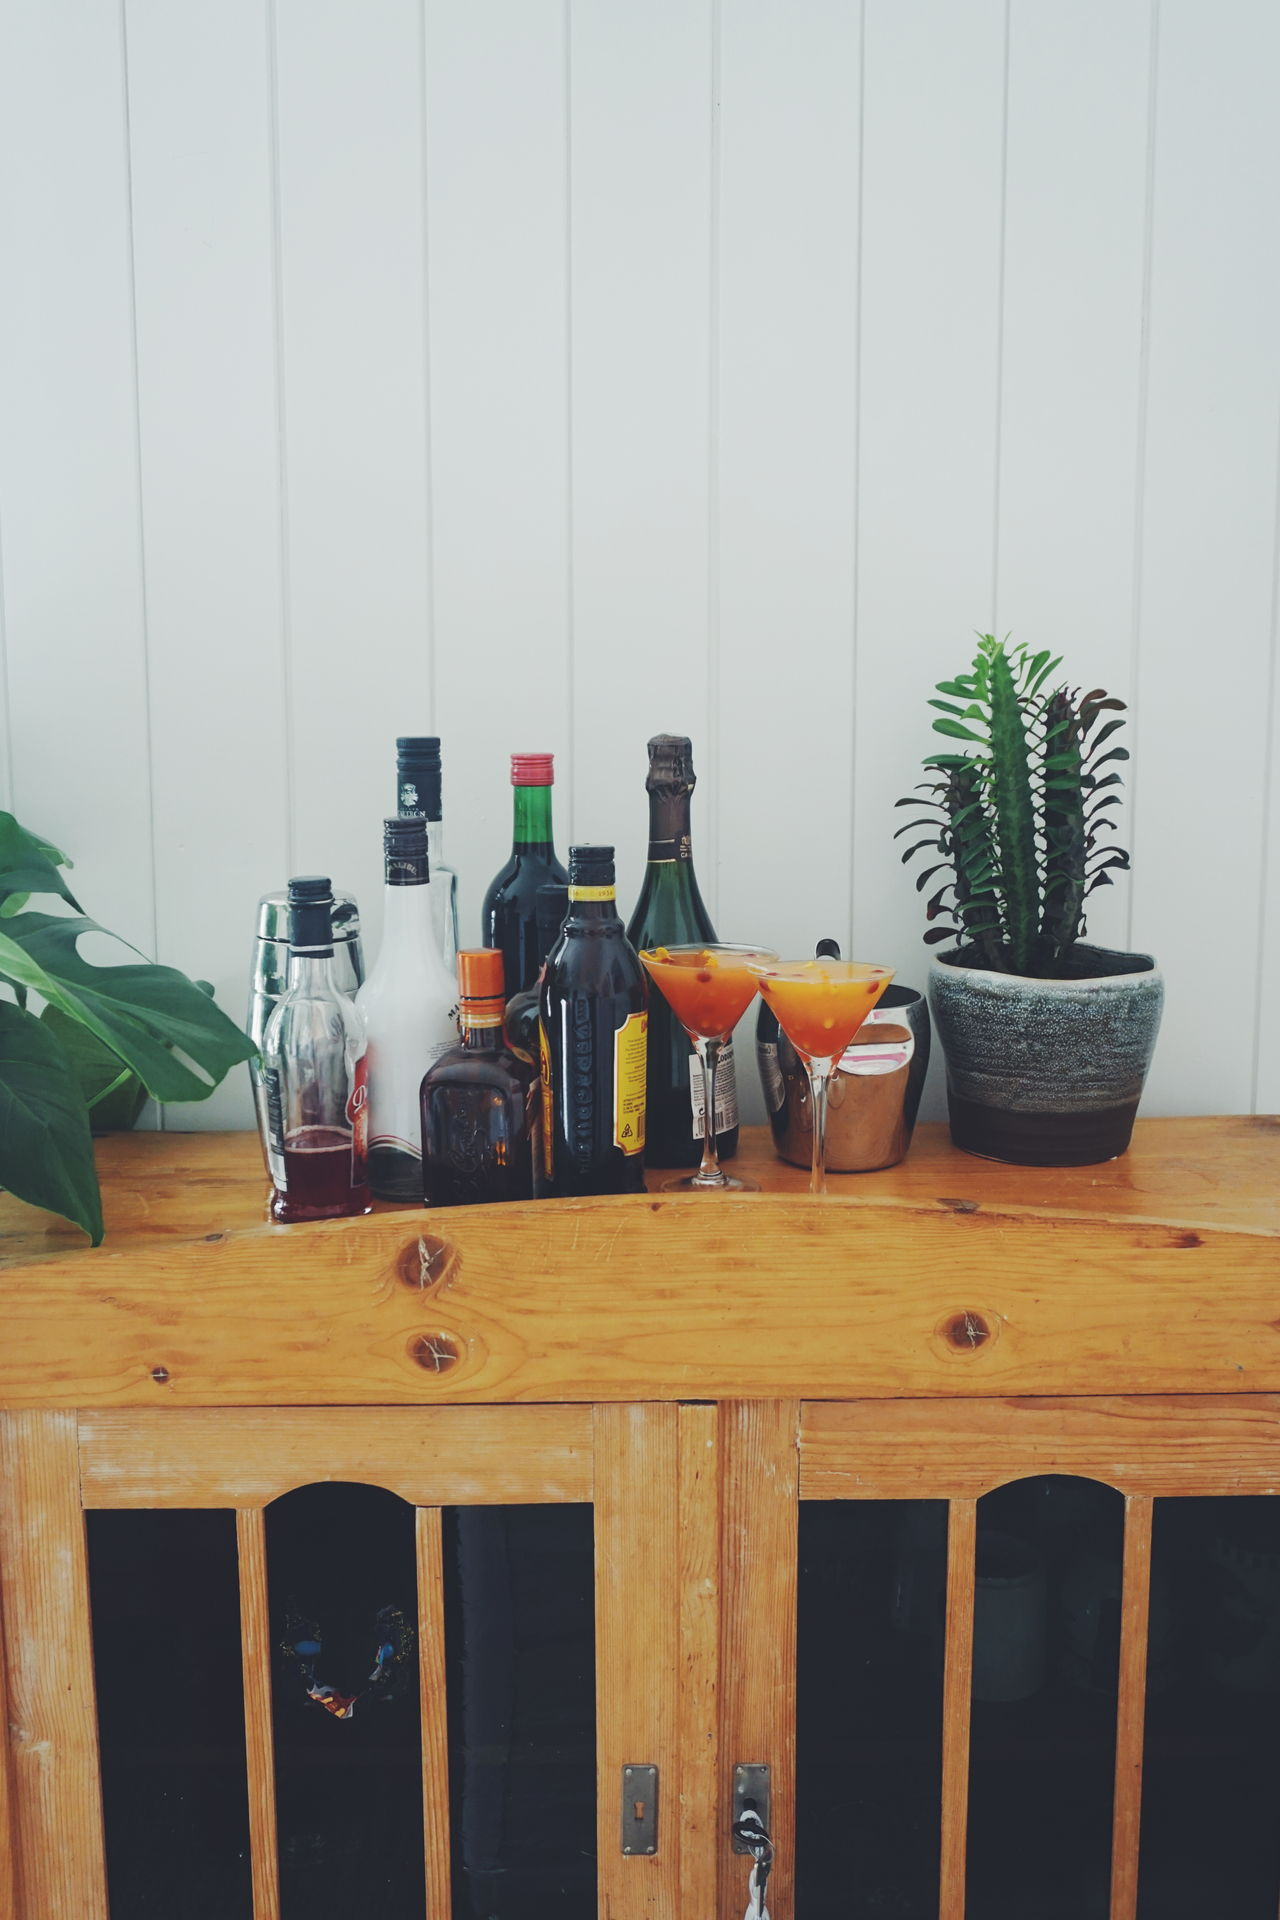 Alkohol bottles Alcohol Alcohol Bottles Alcoholic  Alcoholic Drink Bar Bottle Bottles Bottles Collection Cognac Day Drink Drinking Drinks Indoors  Interior Large Group Of Objects Liquor No People Wine